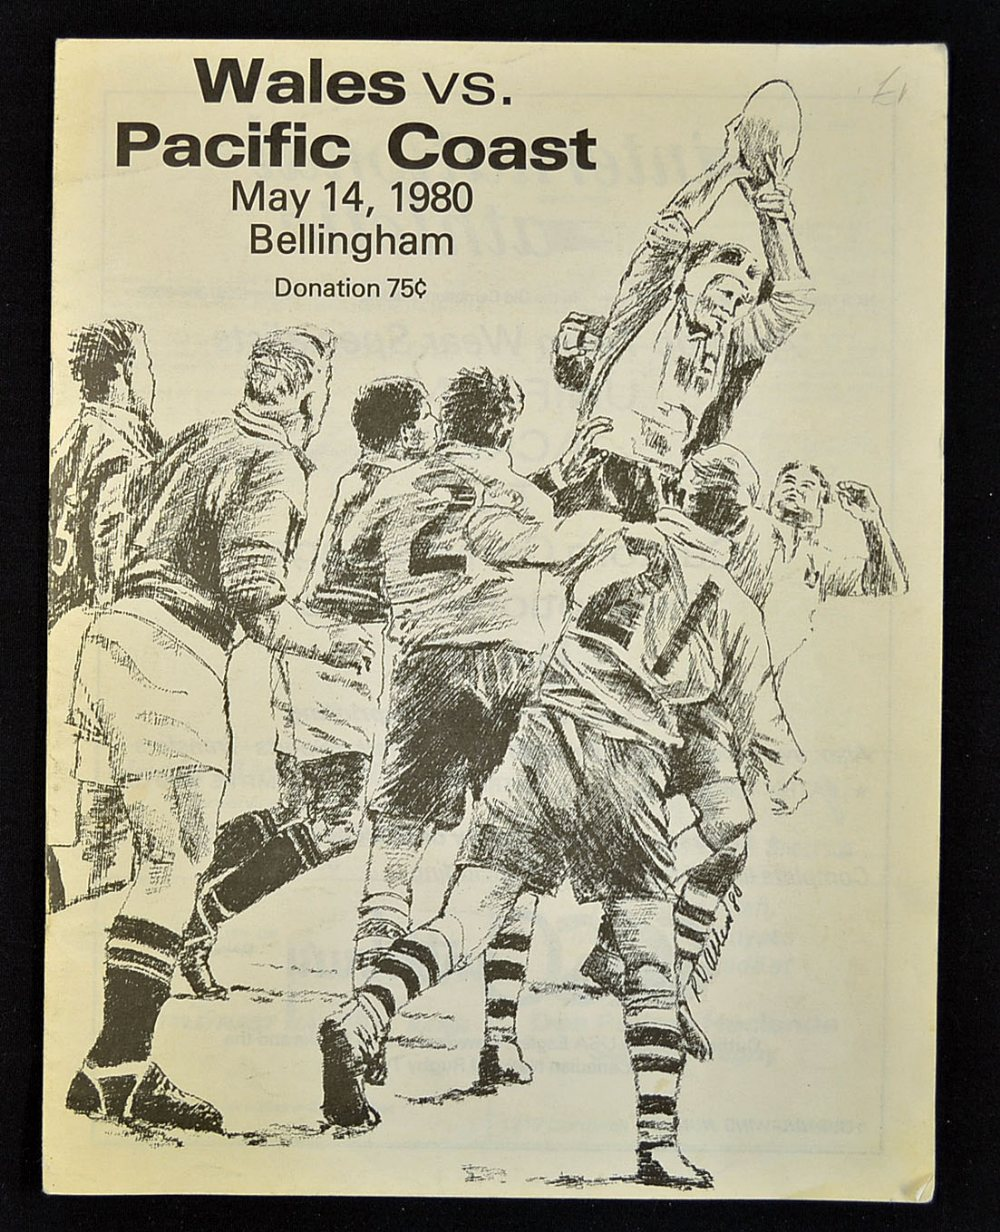 1980 Pacific Coast V Wales Rugby